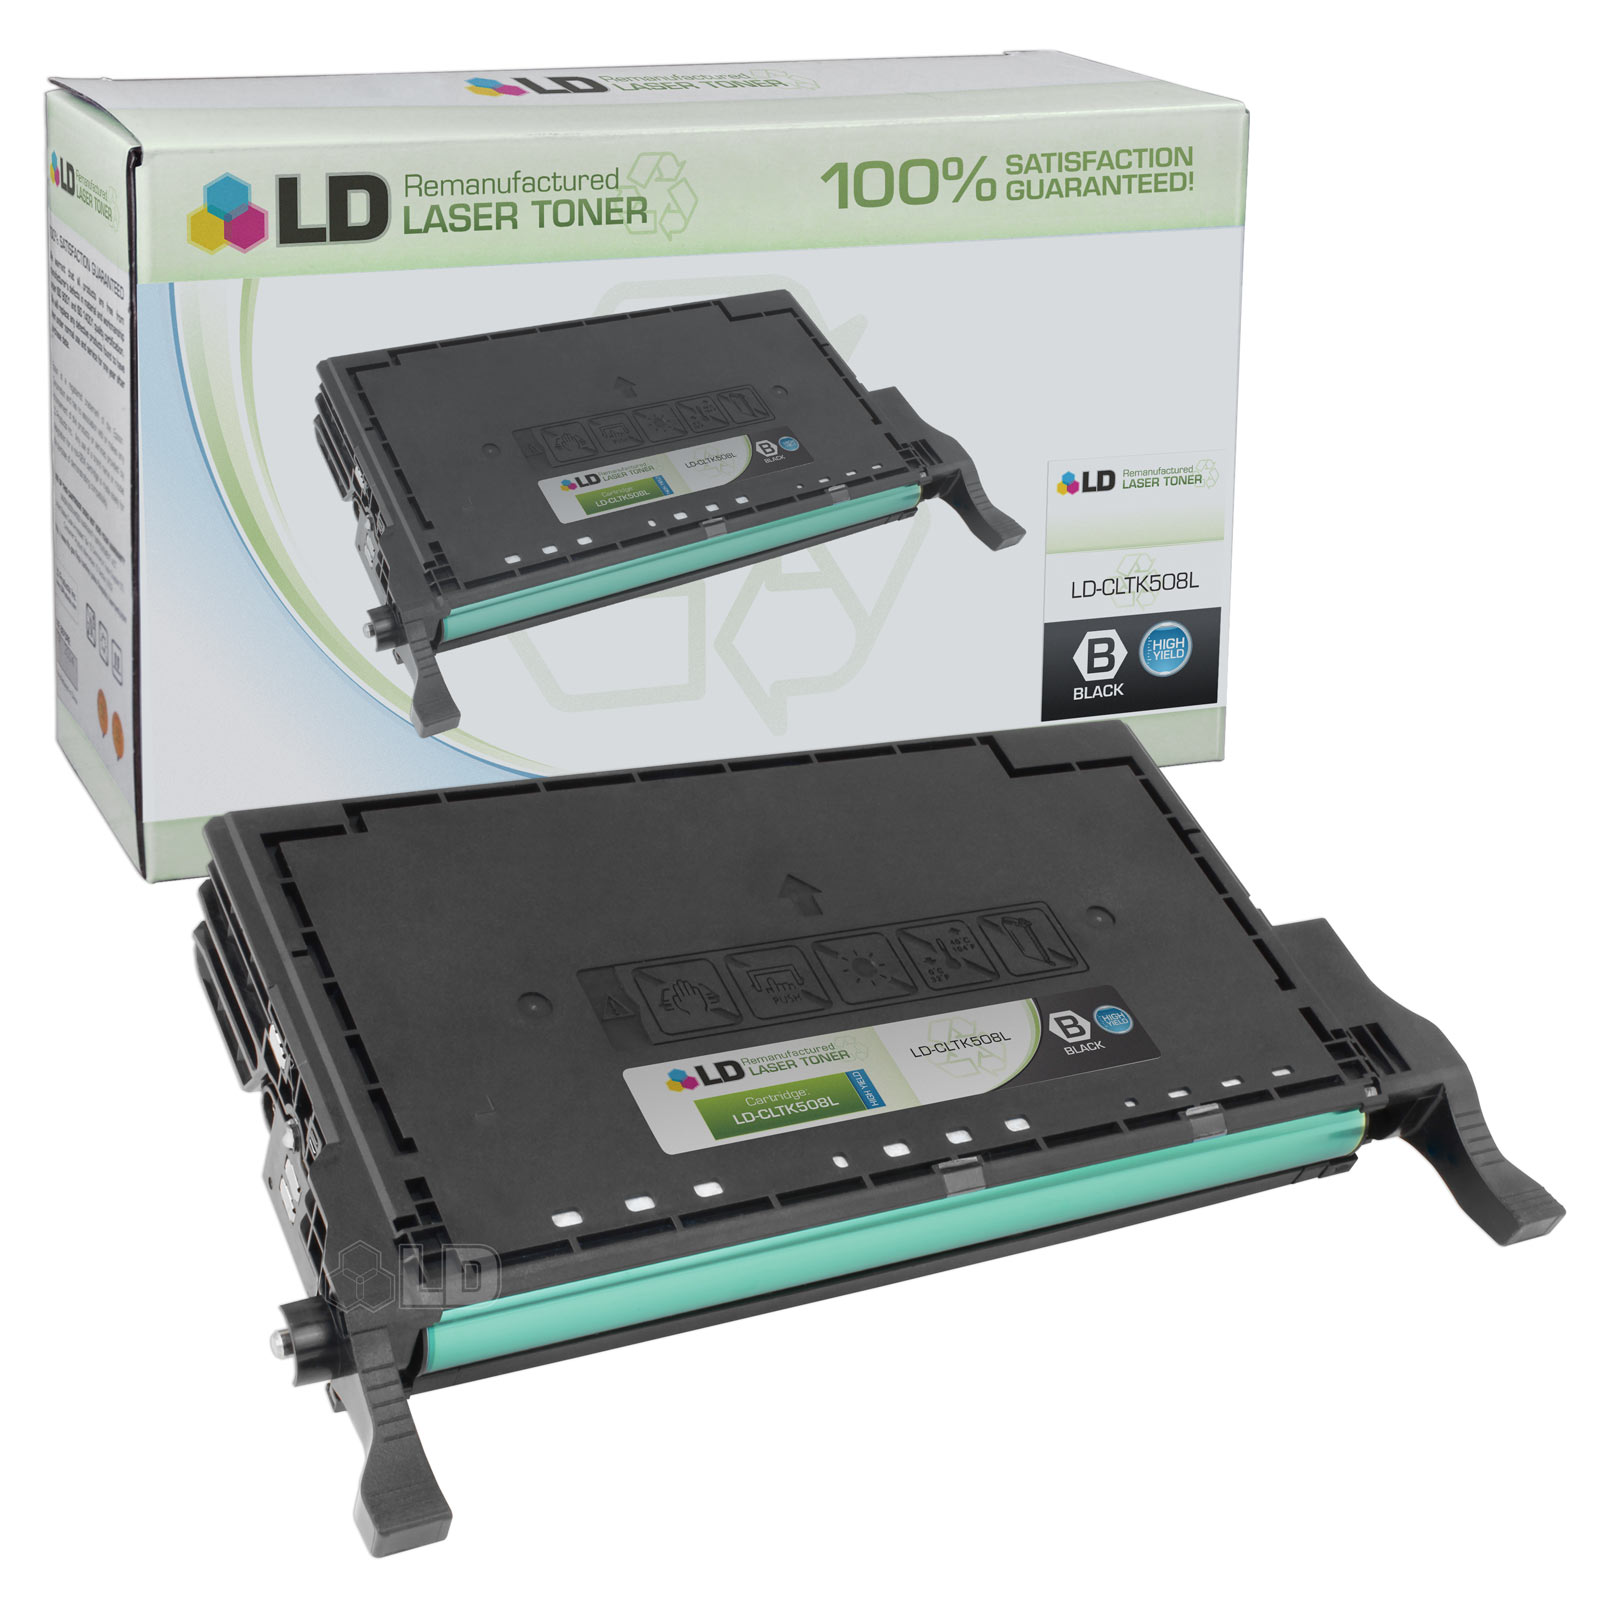 LD Replacement CLT-K508L High Yield Black Laser Toner Cartridge for use in the CLP-620ND, CLP-670N, CLP-670ND,